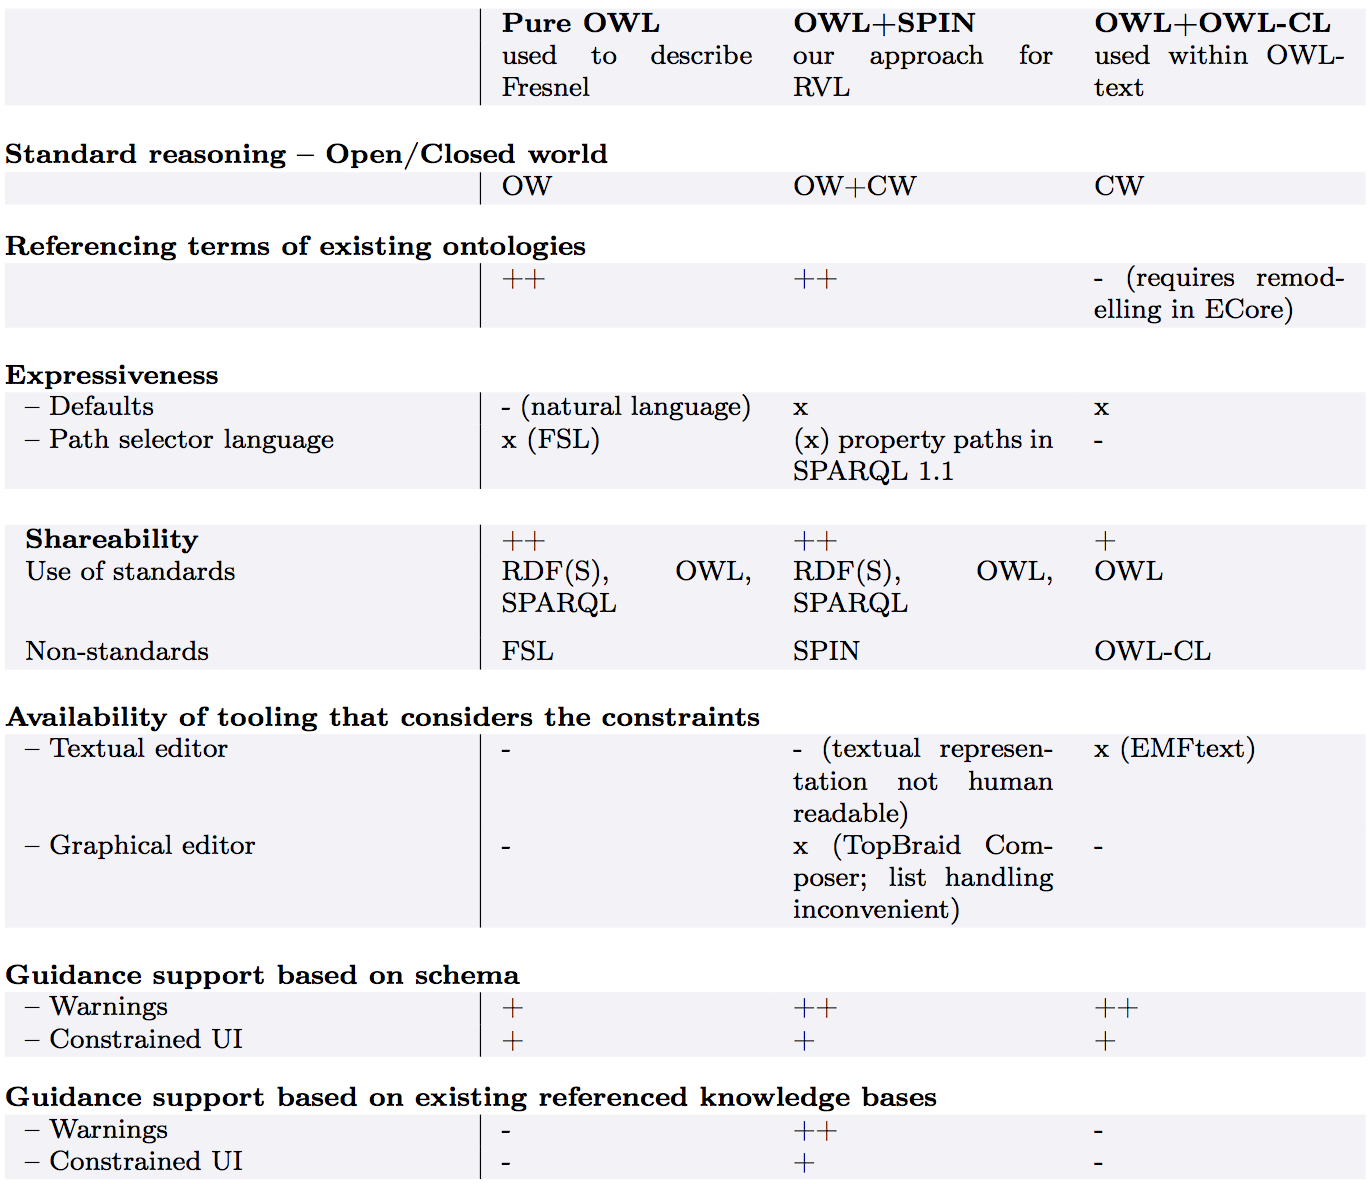 Table 2 - Comparison of three options foor specifying the RVL schema